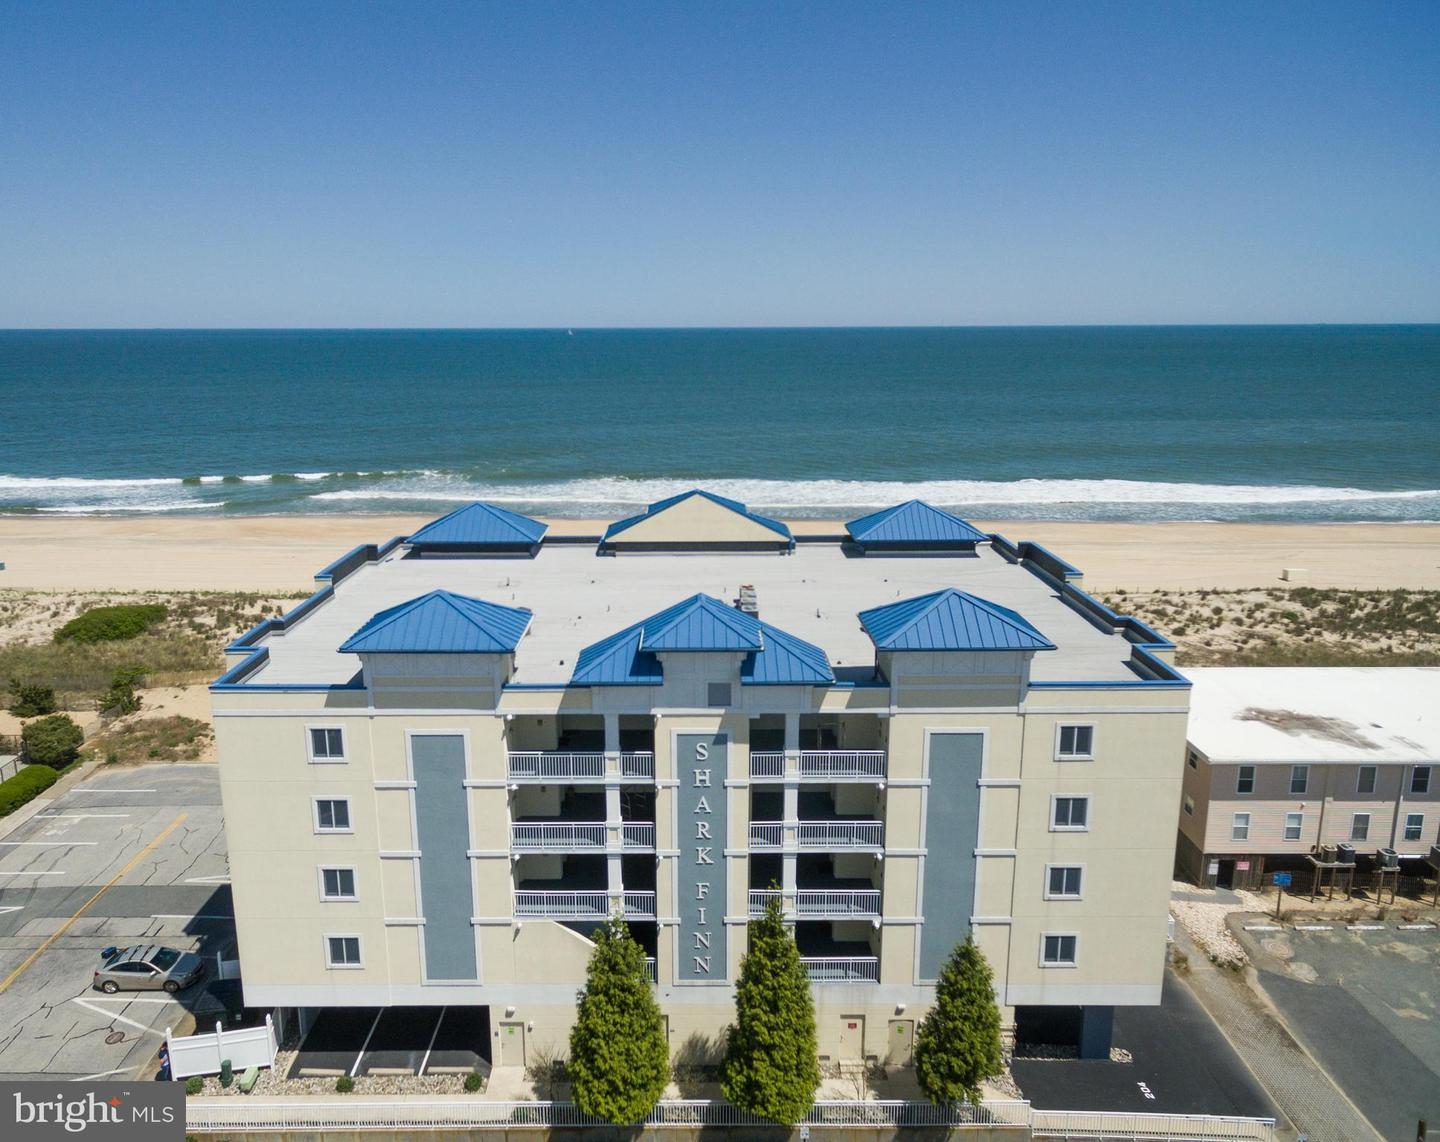 1 125th St #403 Ocean City MD 21842